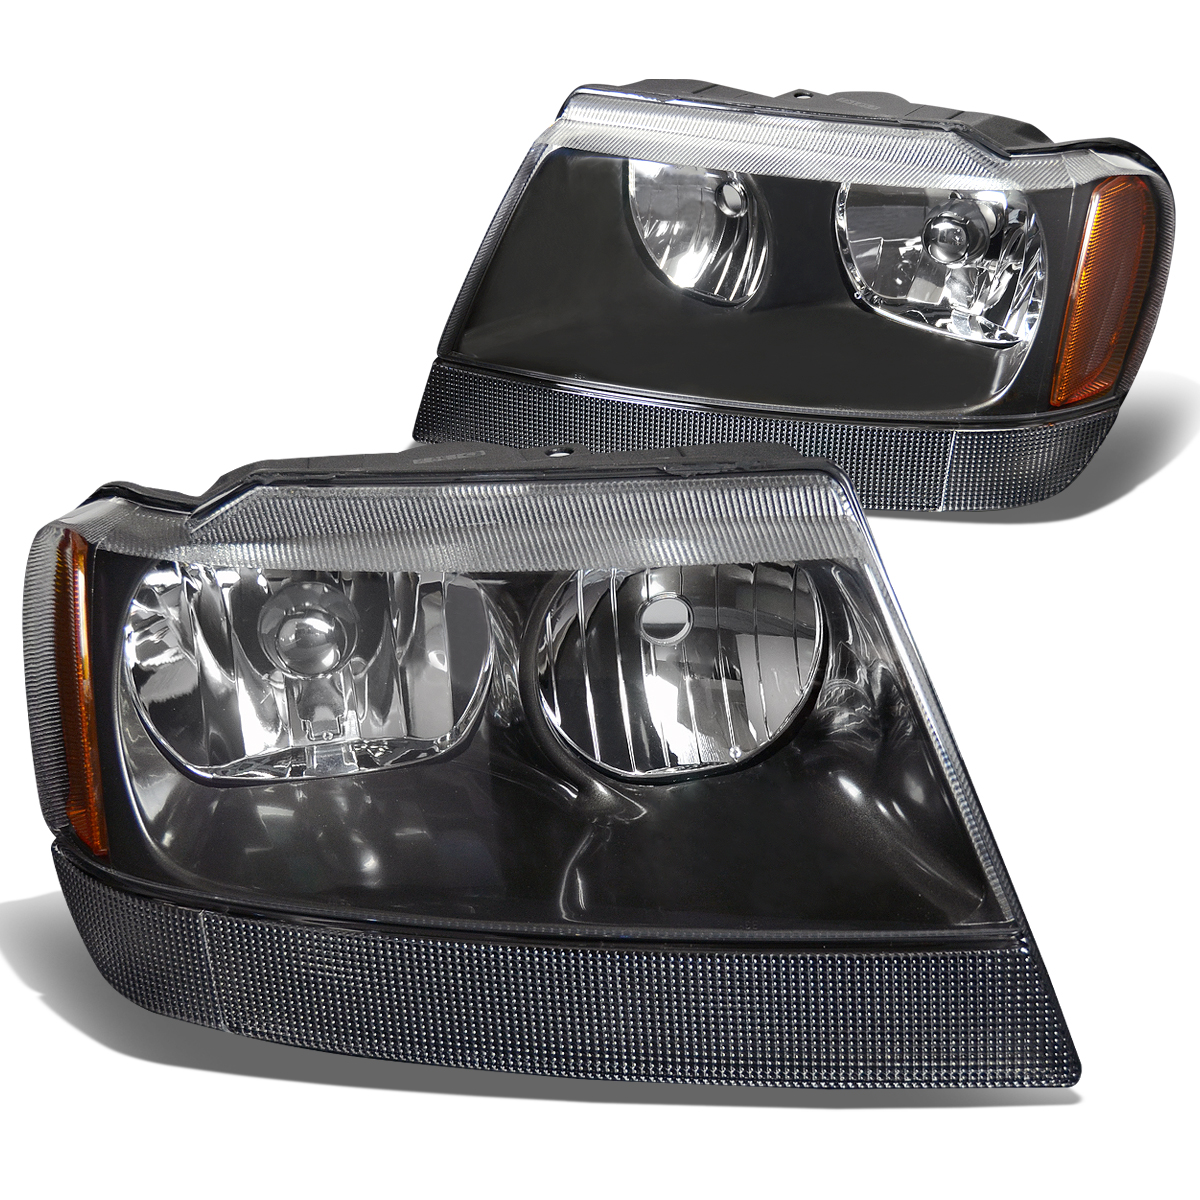 For 99-04 Jeep Grand Cherokee Headlight Lamps With Amber Reflector Kit (Black Housing) - WJ 00 01 02 03